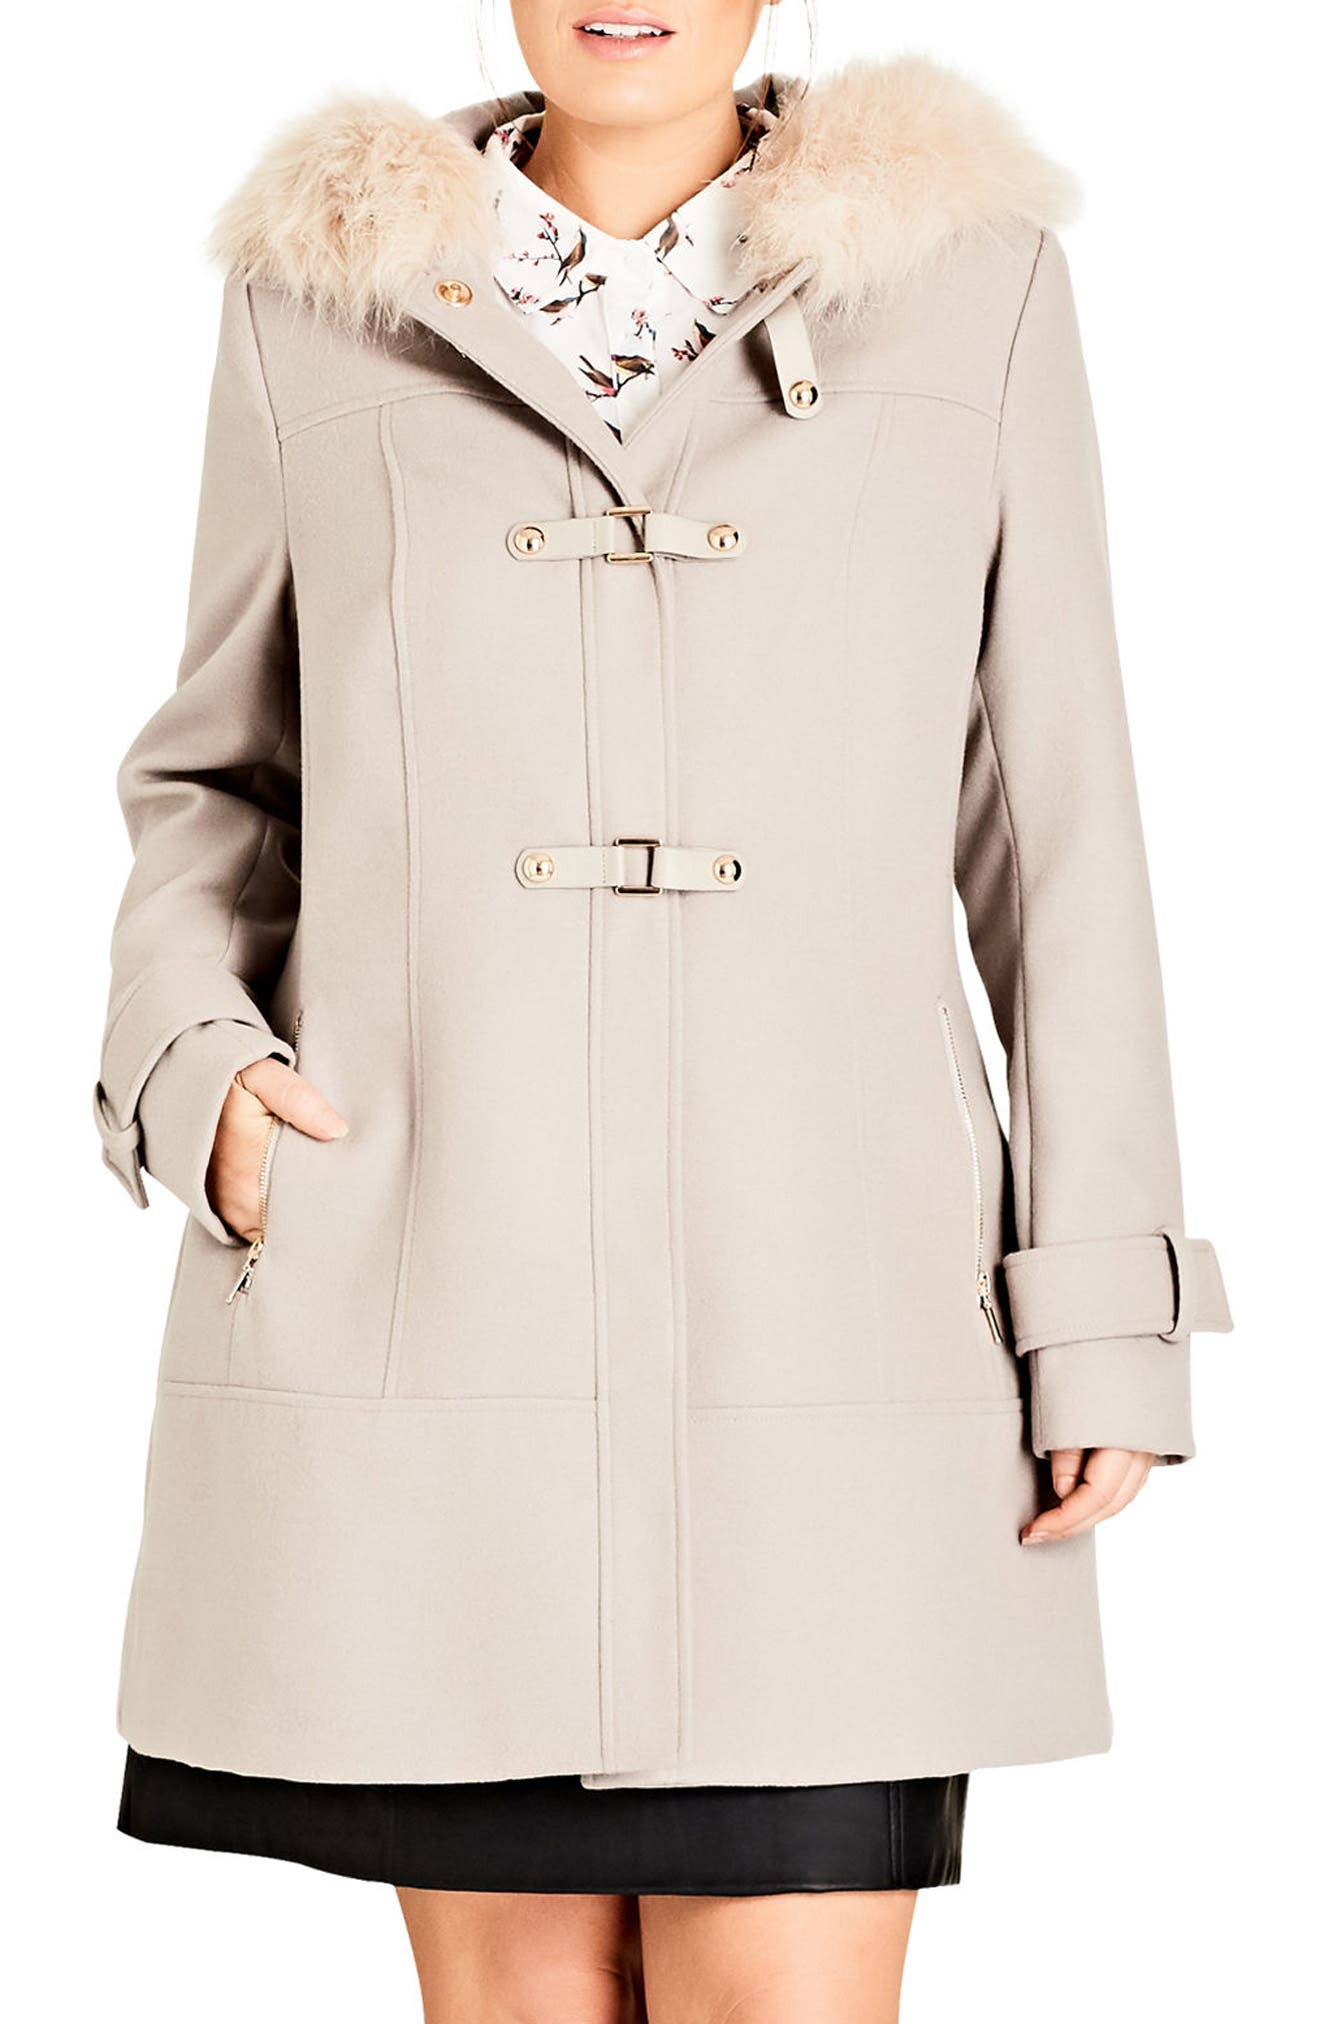 Alternate Image 1 Selected - City Chic Wonderland Peacoat with Faux Fur Trim (Plus Size)